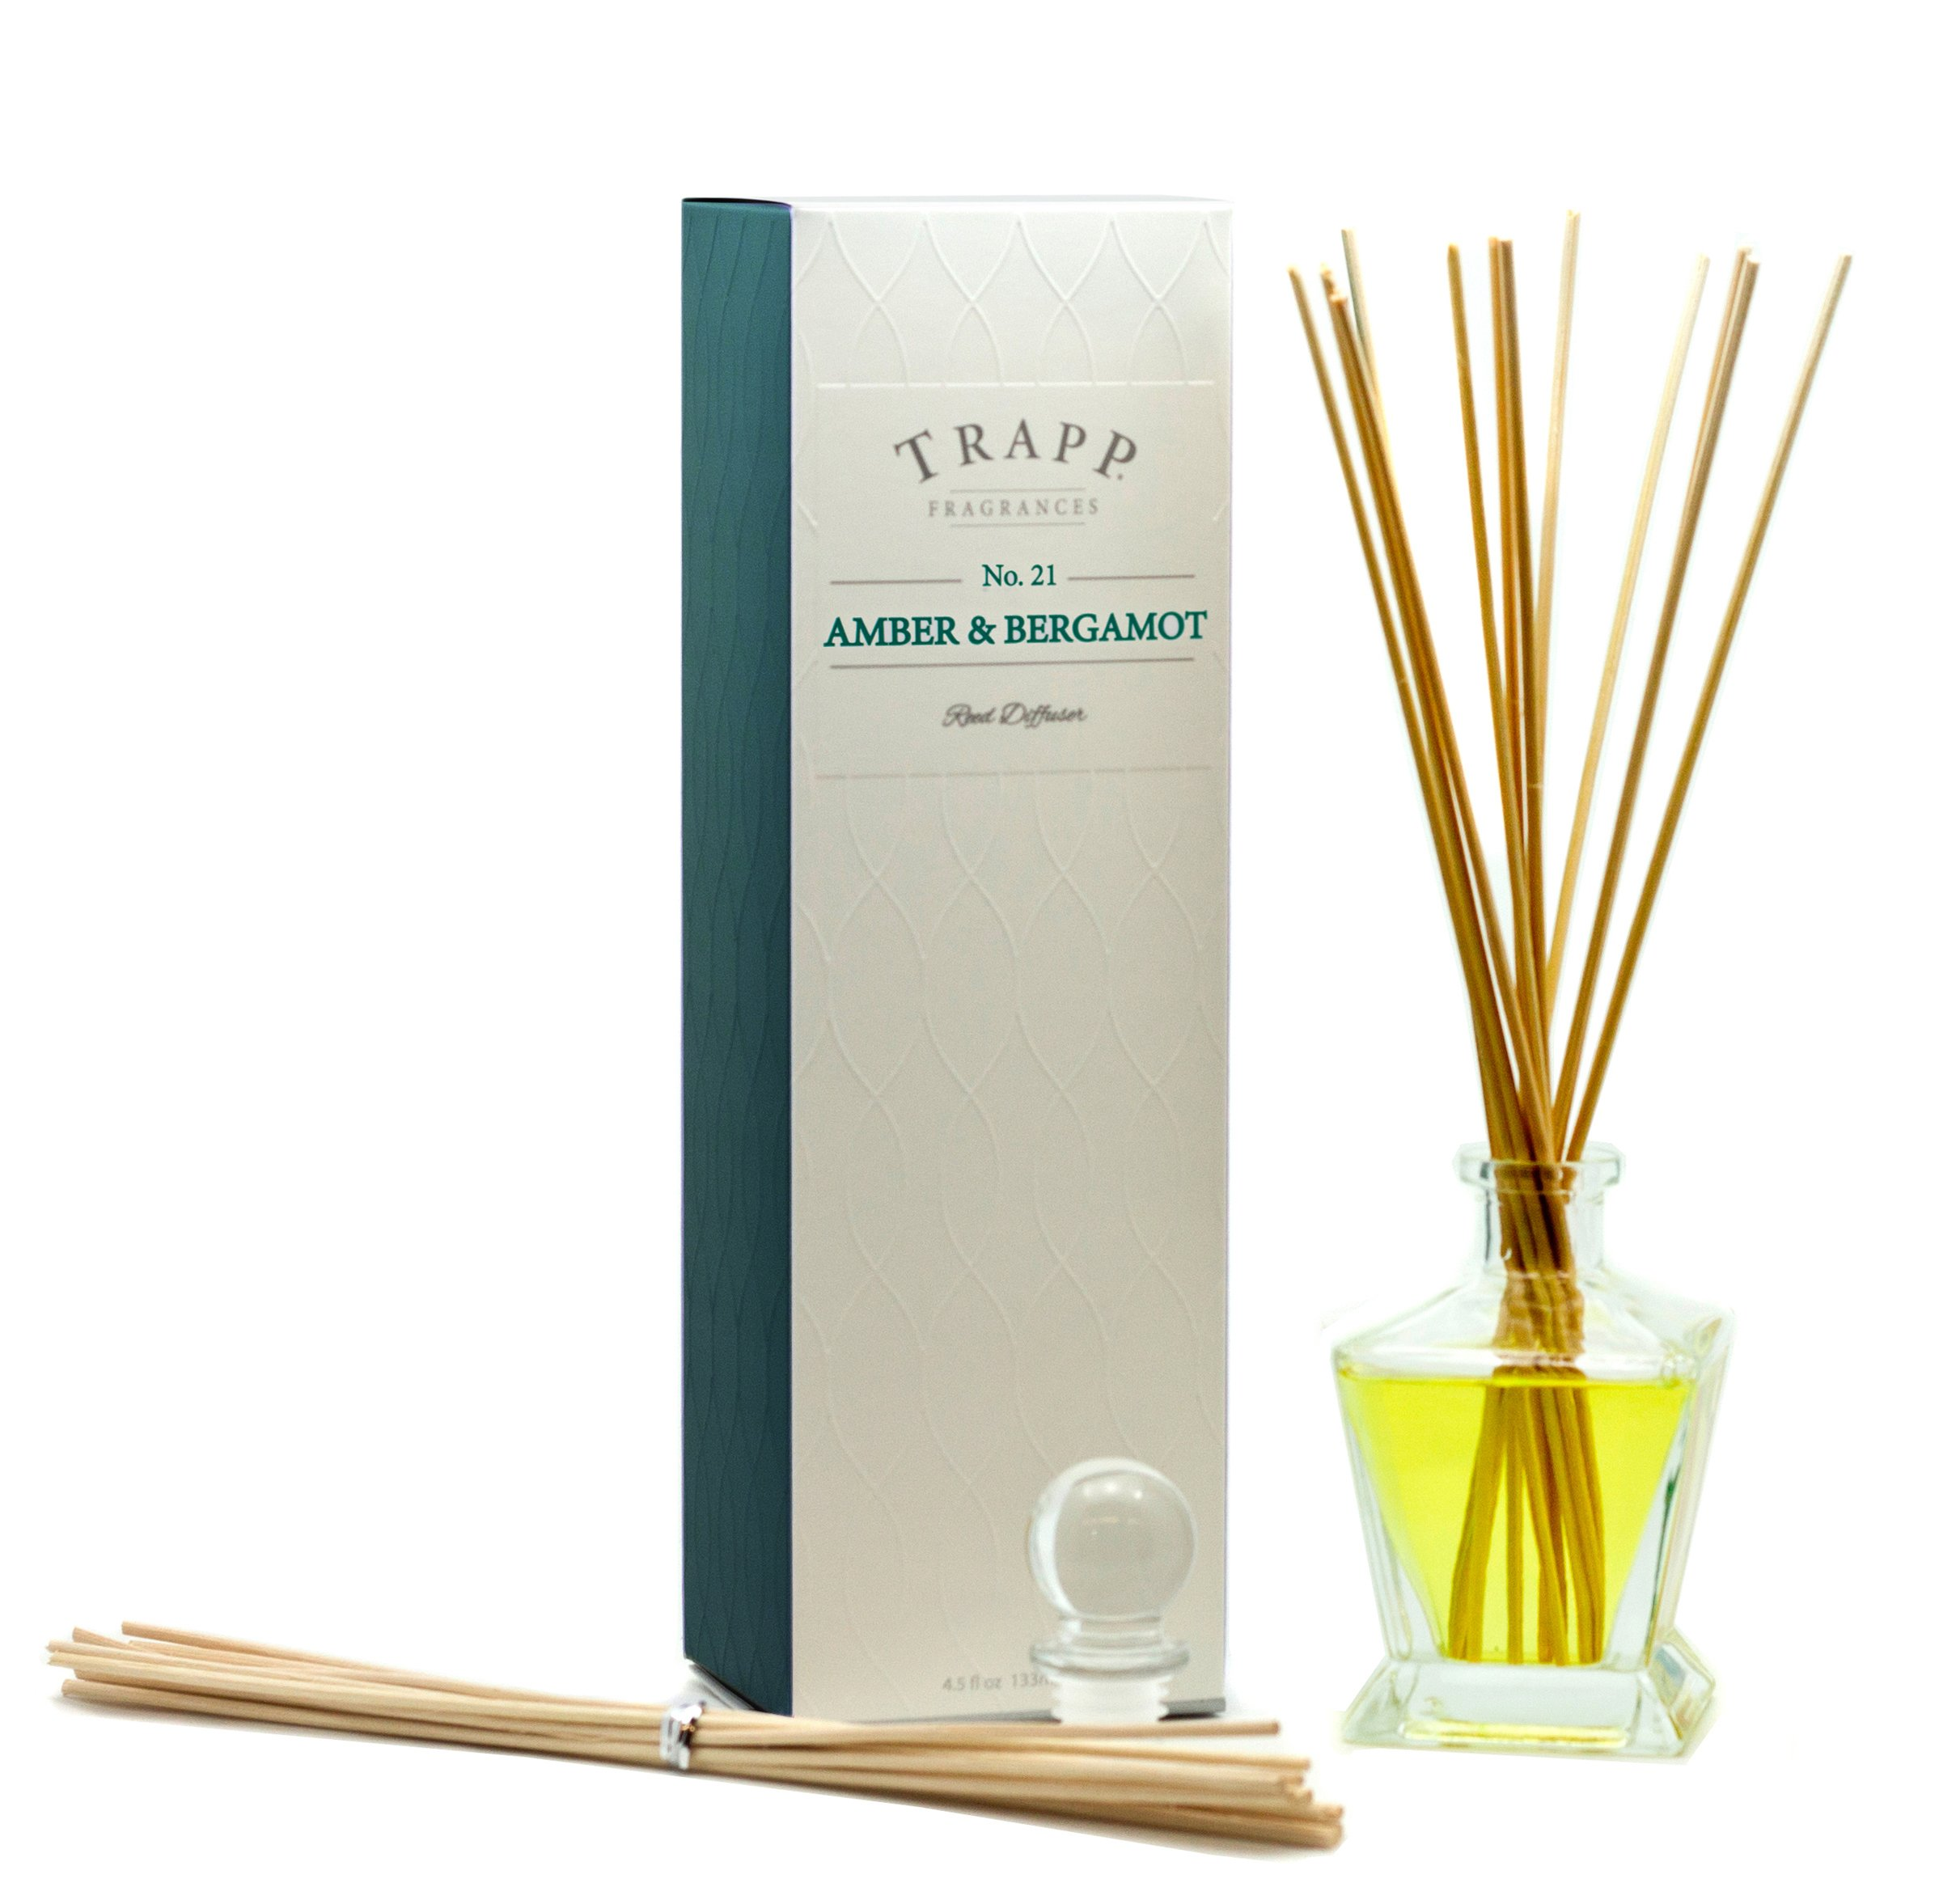 Trapp Ambiance Collection No. 21 Reed Diffuser Kit, Amber & Bergamot, 4.5-Ounce by Trapp